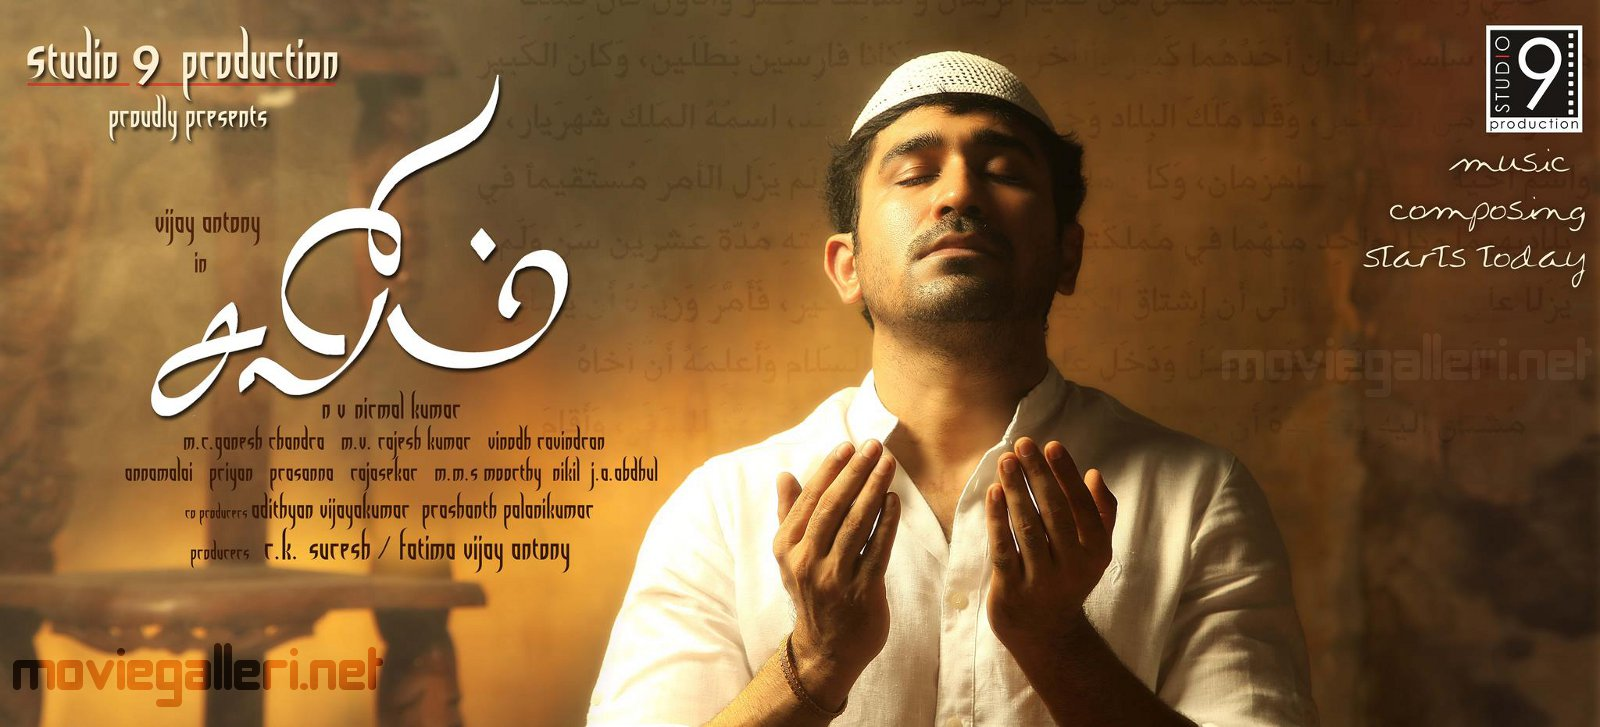 Vijay Antony Salim Tamil Movie First Look Wallpapers